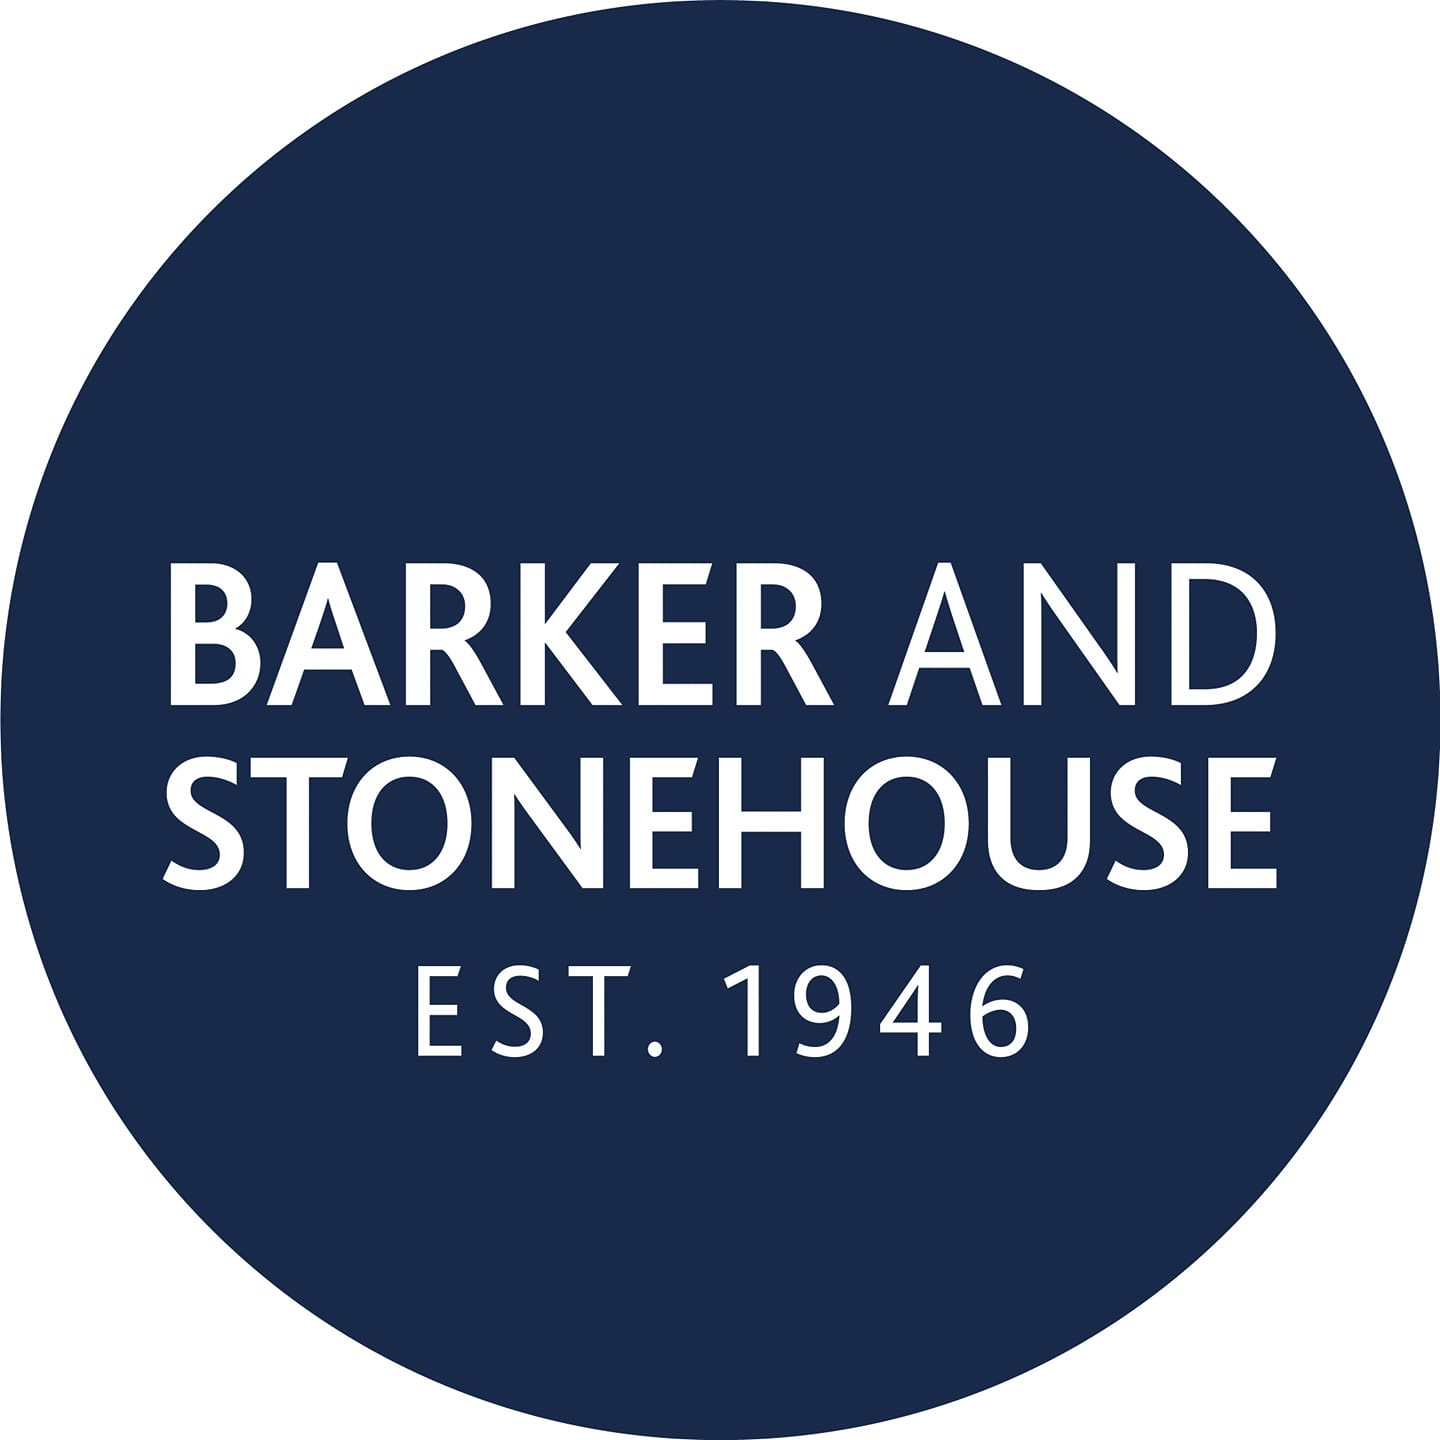 Image Label: Logo | Seller Name: Barker And Stonehouse | Location: United Kingdom | County Durham | Stockton-on-Tees | Summary: Barker and Stonehouse is a British independent furniture retailer. It is a family-run firm since 1946 and was established in Stockton, County Durham.